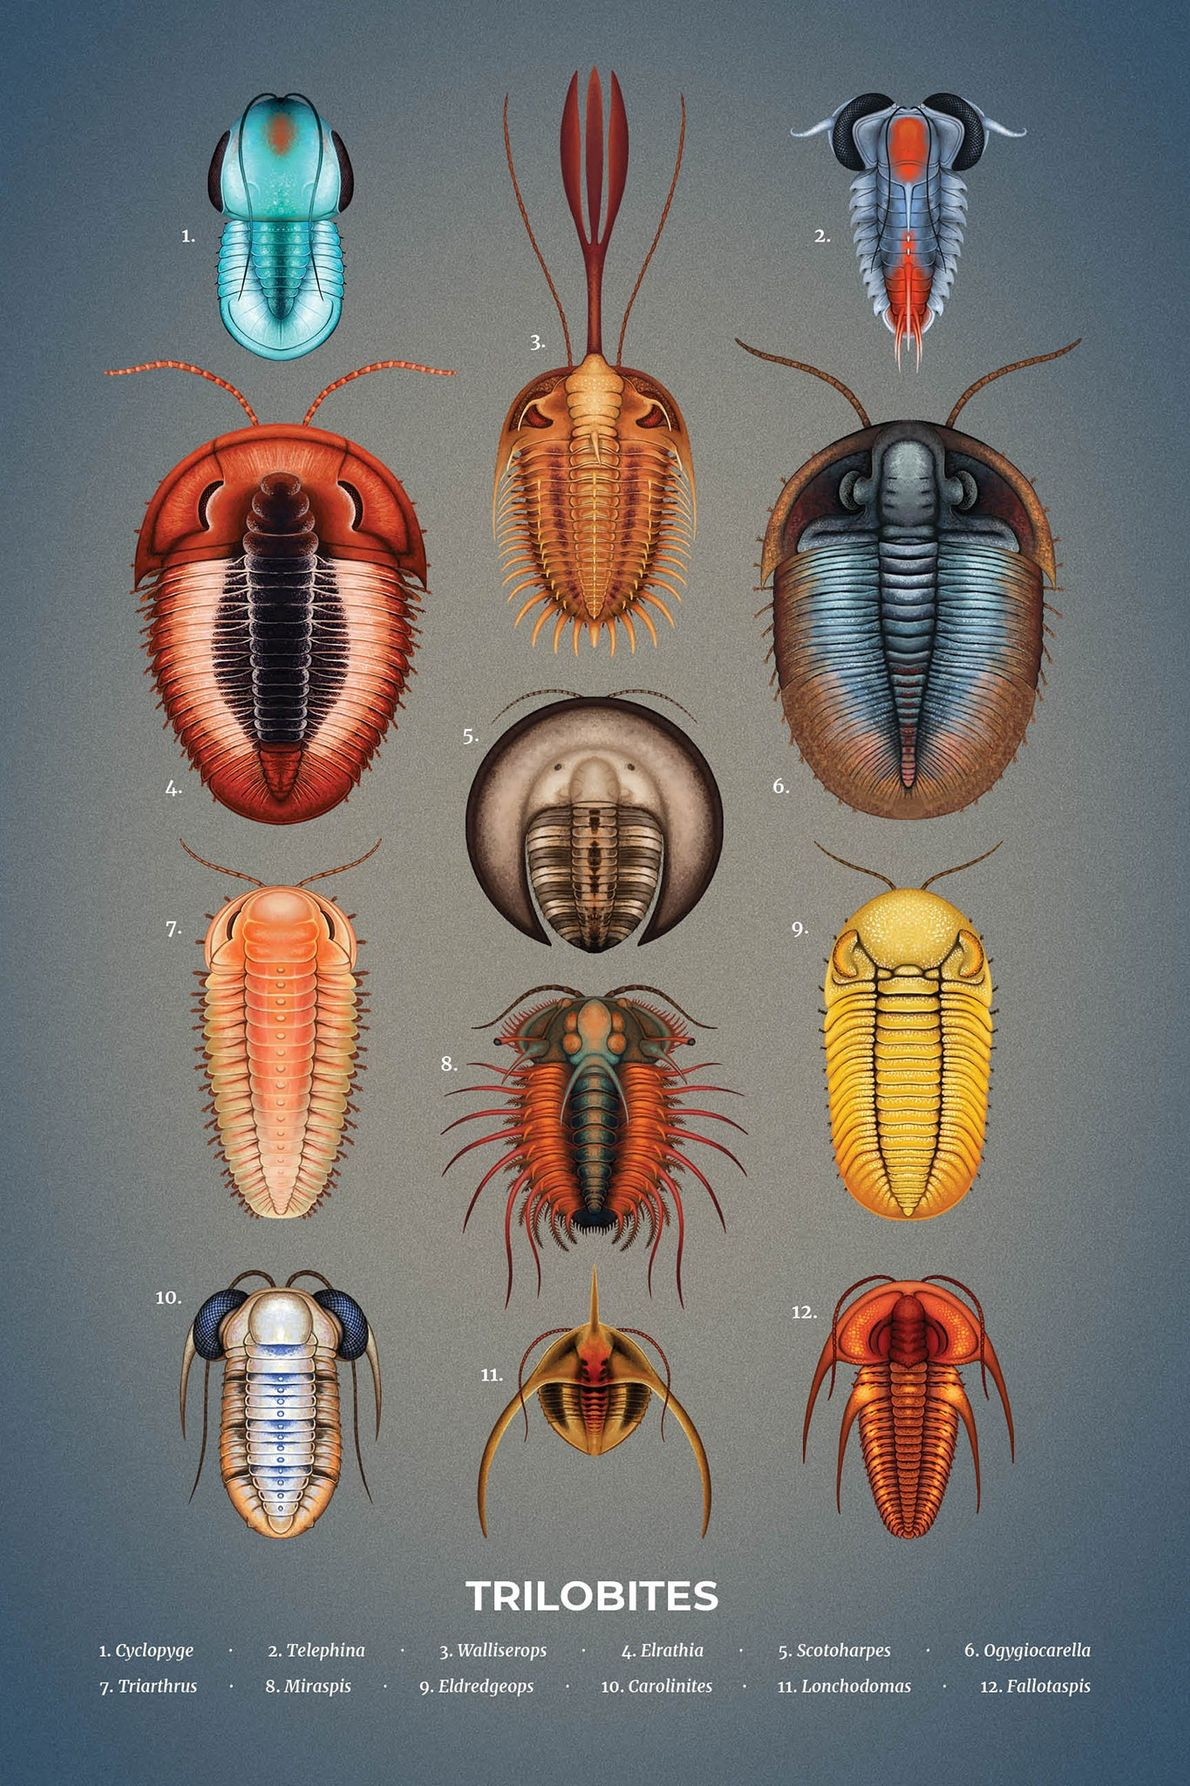 Trilobites emerged during the Cambrian period some 520 million years ago and proliferated globally until their ...